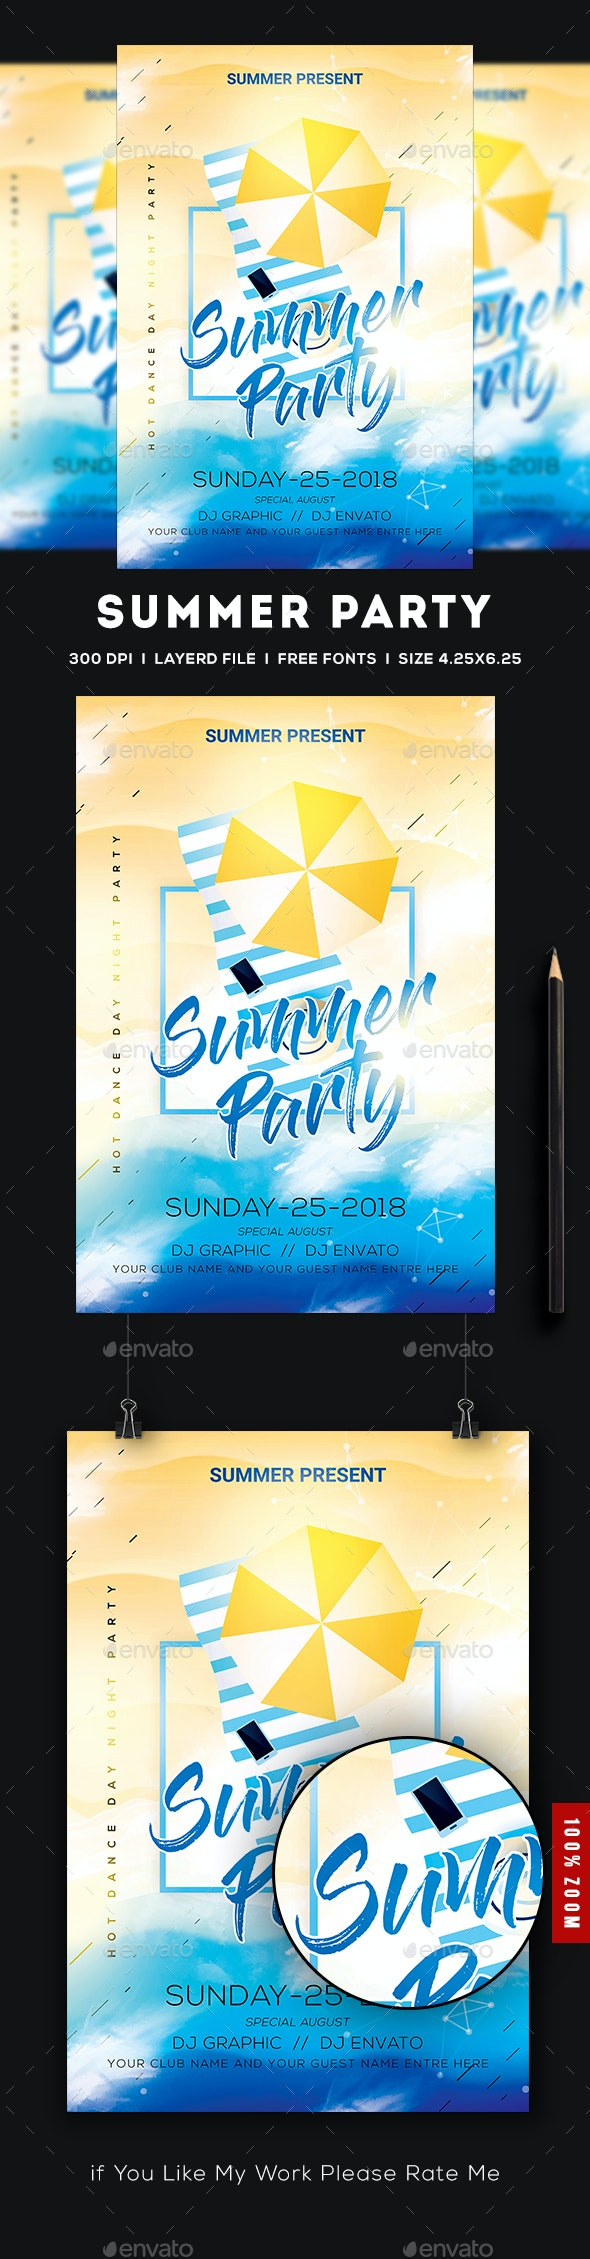 Summer Beach Party Flyer - Concerts Events